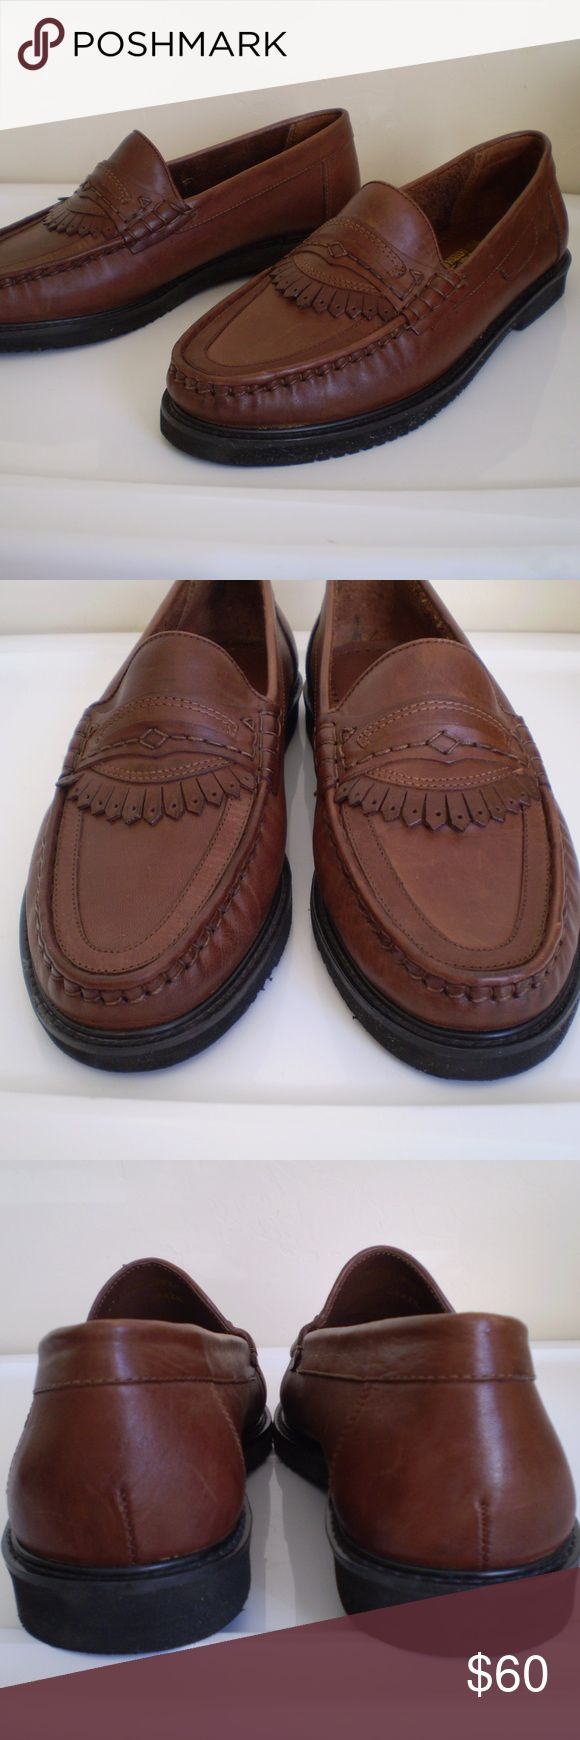 brown genuine leather man Brown genuine leather man dressy casual shoes, size 9.5, in excellent condition. Shoes is light weight and soft. DWT International Shoes Loafers & Slip-Ons